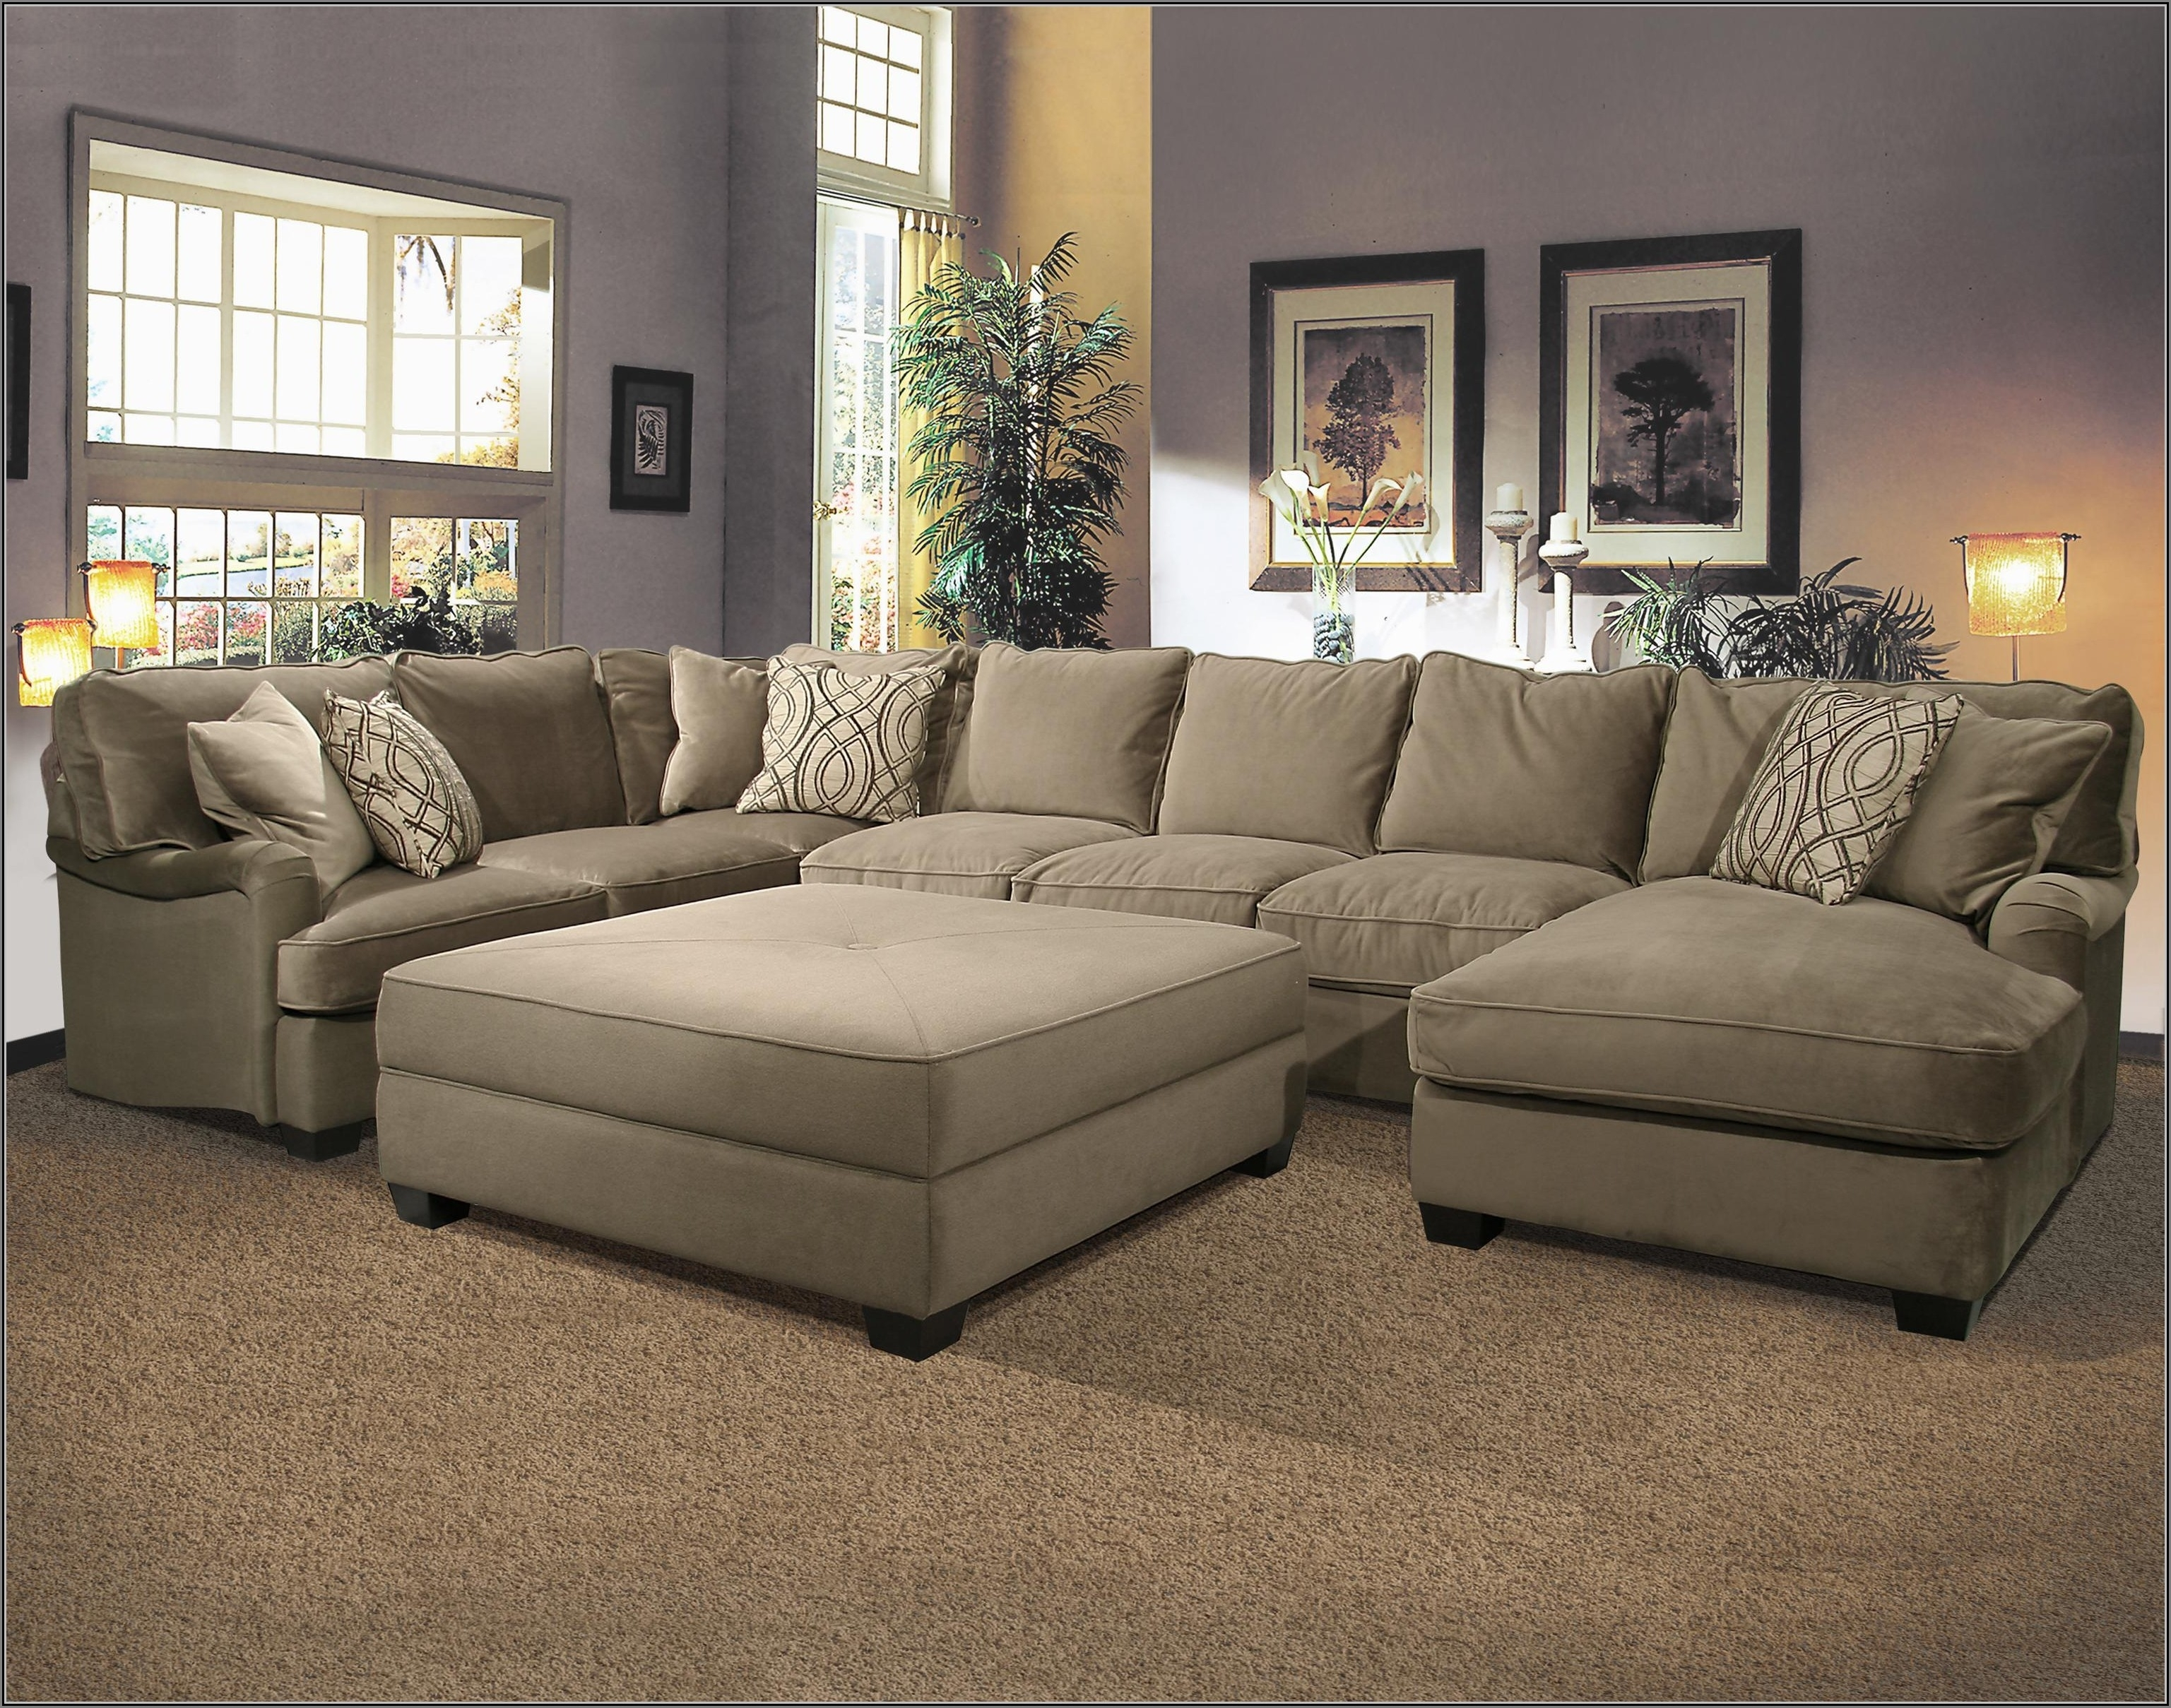 Horseshoe Shaped Sectional Couch